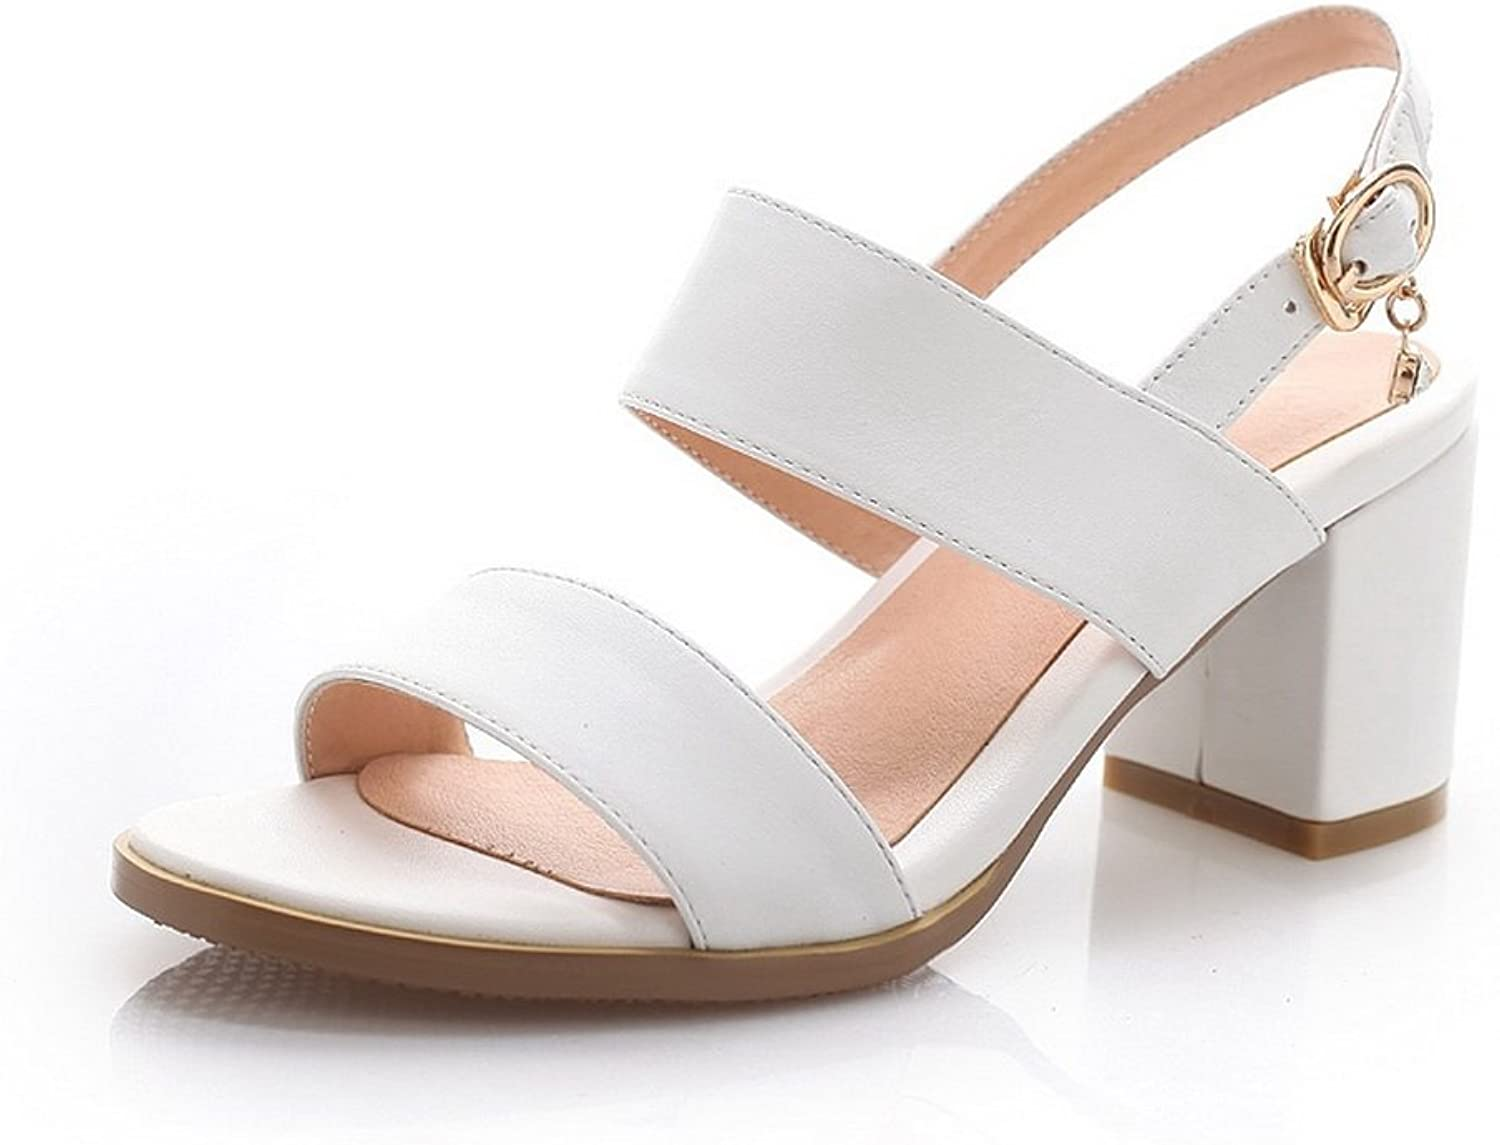 WeiPoot Women's Open-Toe Kitten-Heels Simulation Cow Leather Solid Sandals, White, 34